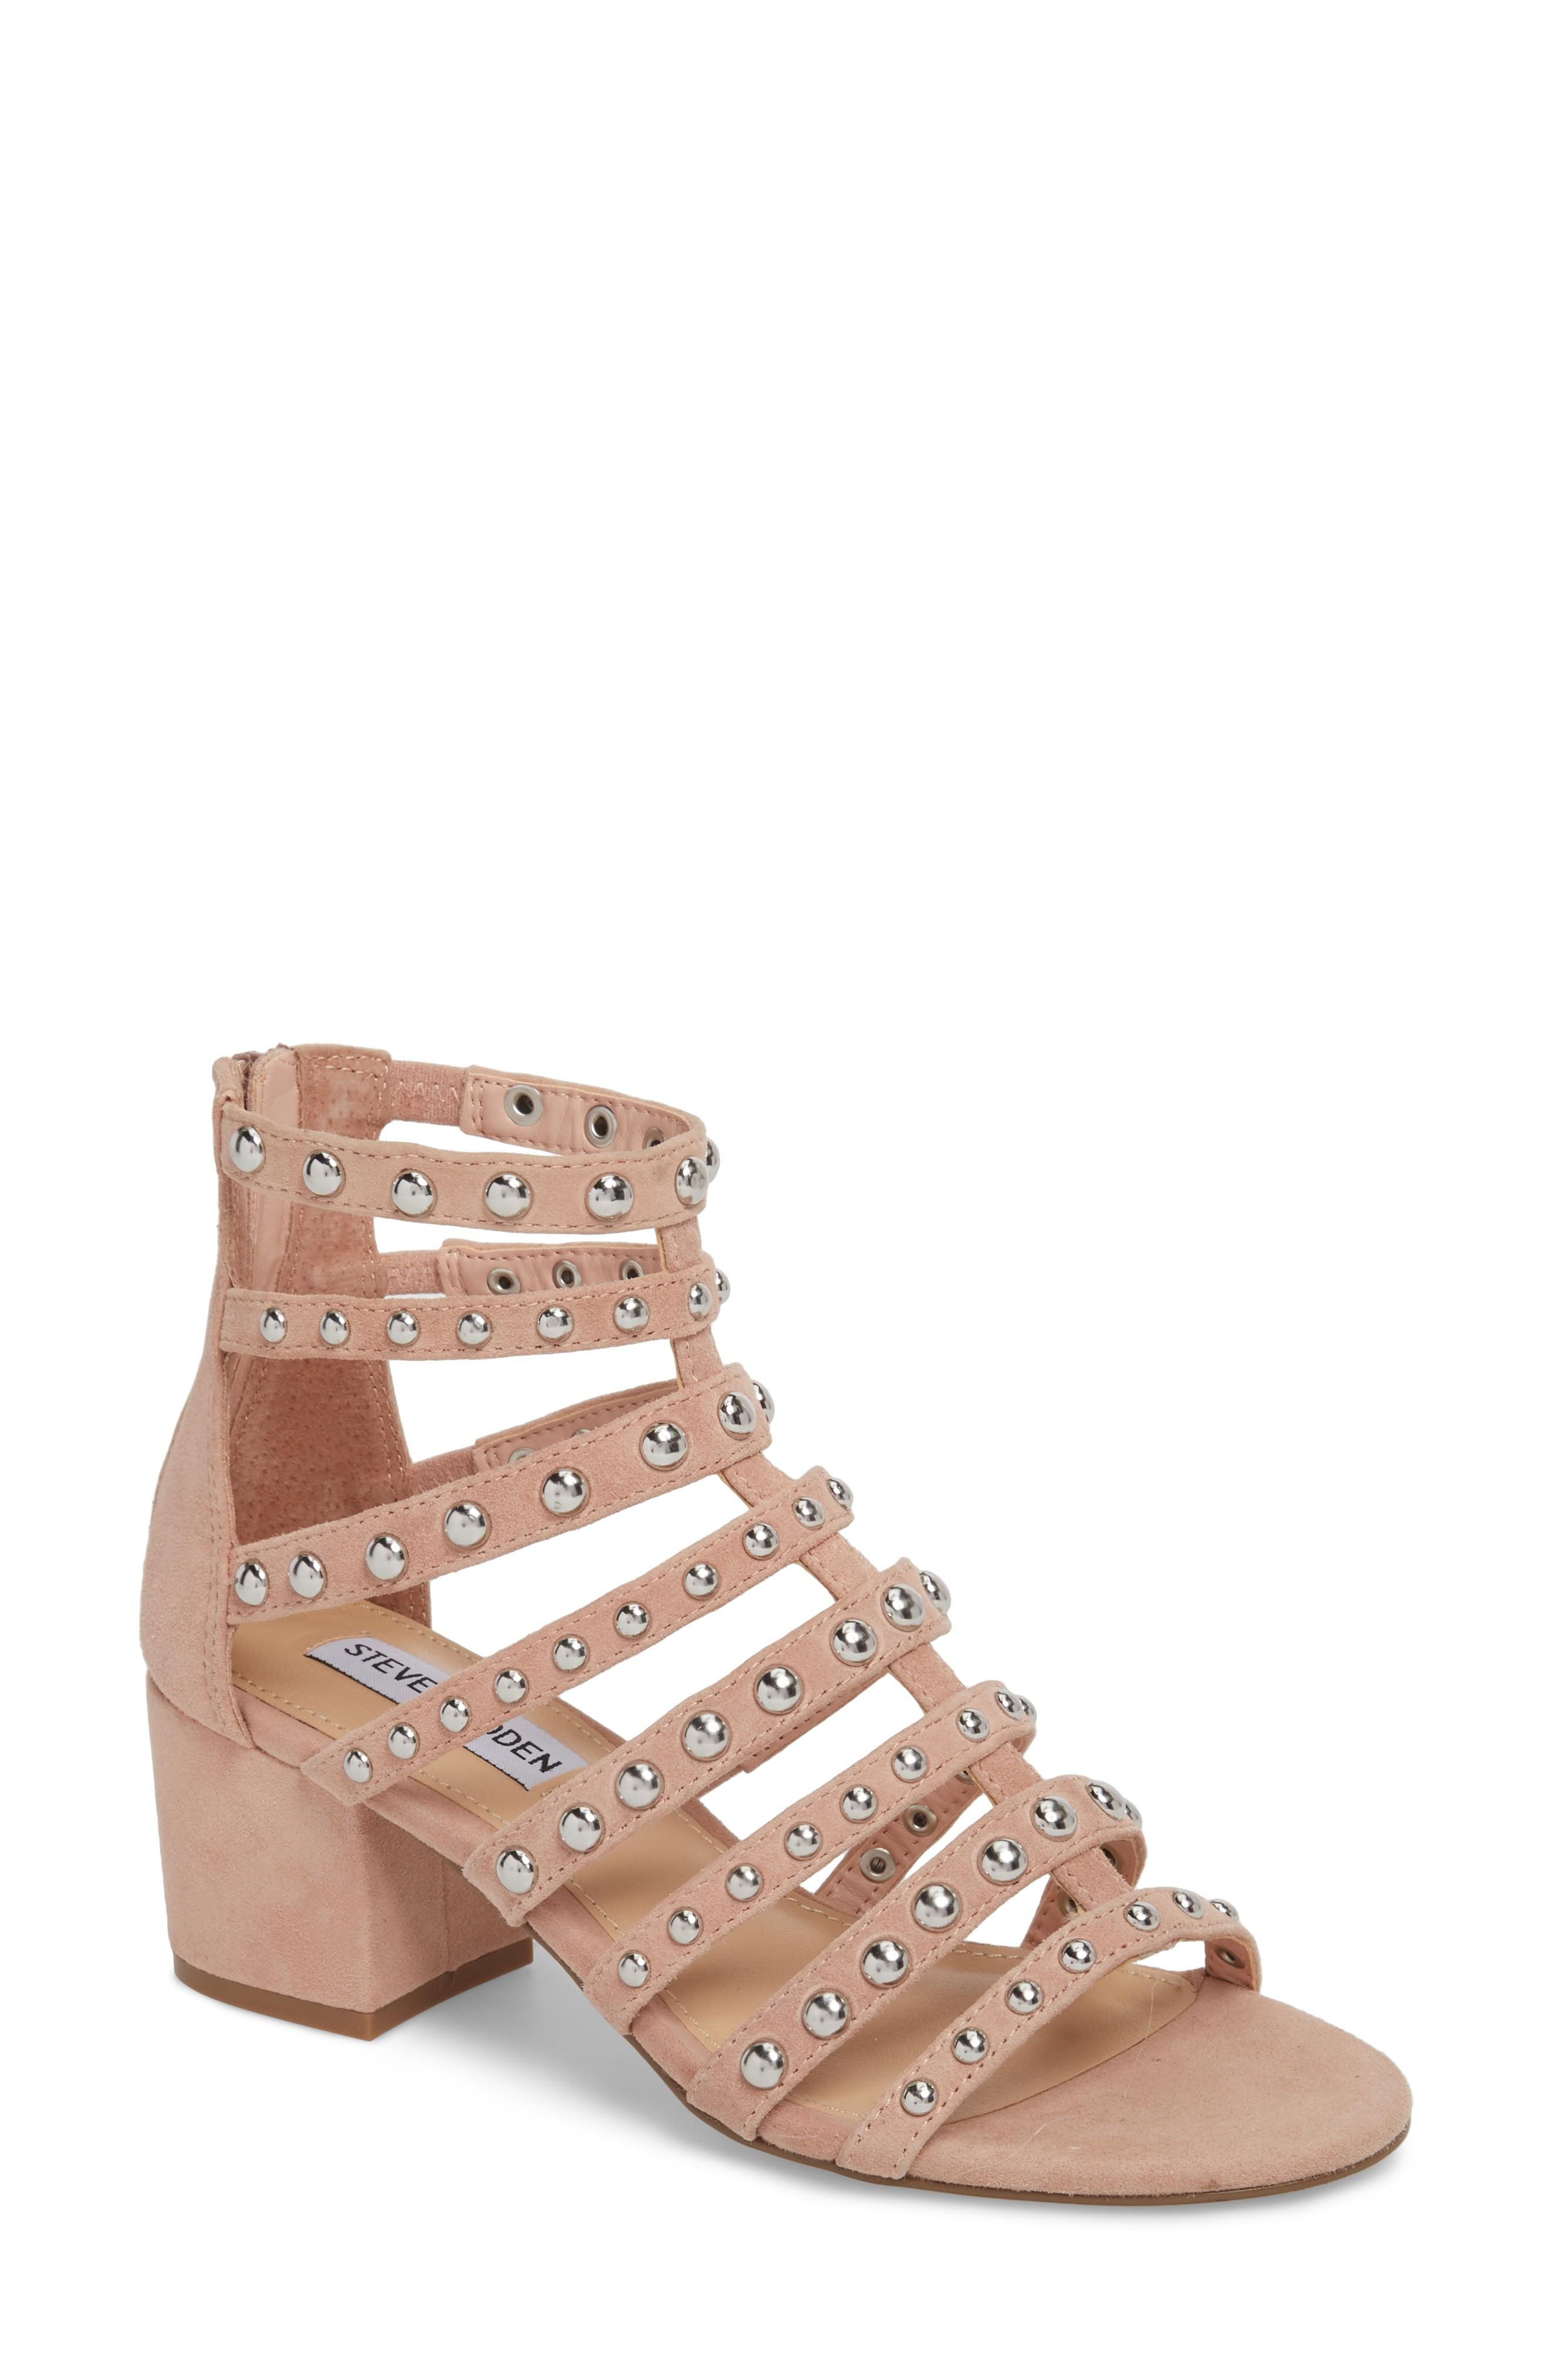 2712ce1f752 Steve Madden Mania Studded Cage Sandal In Blush Multi